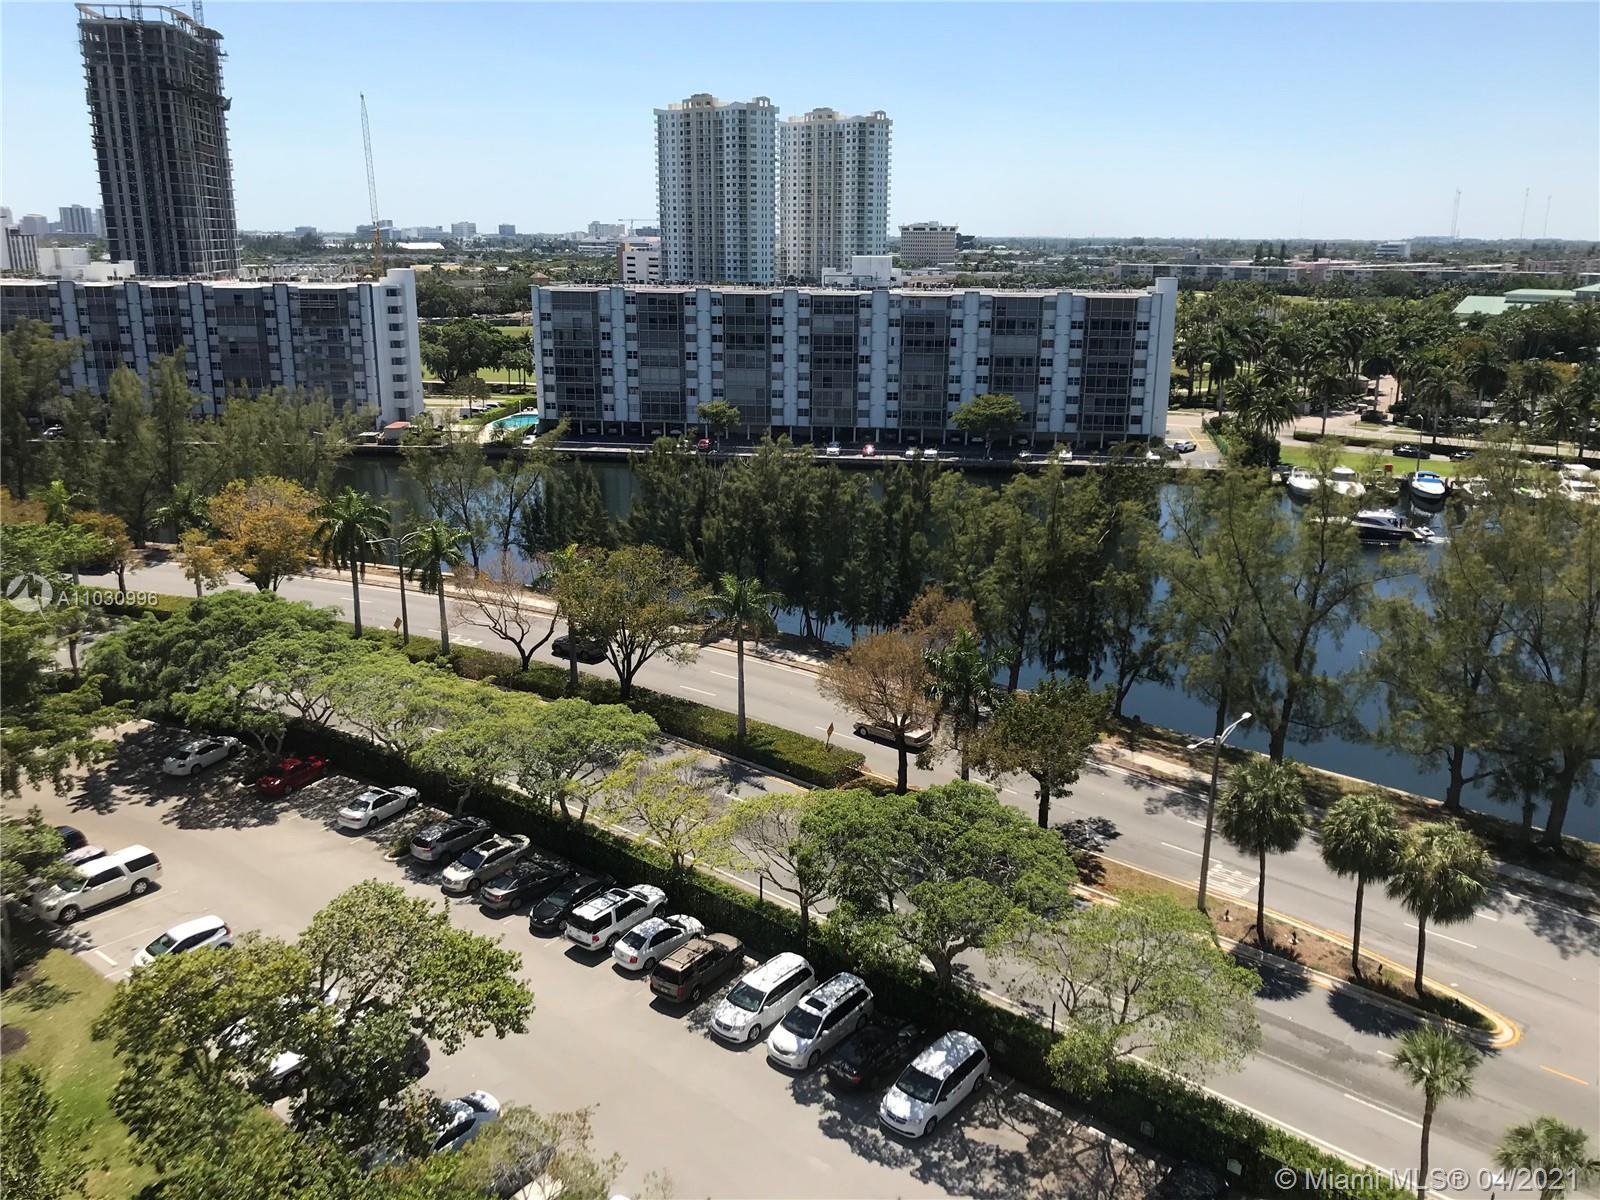 unit is in good shape / some great sunset and lake views / building has full service and security e